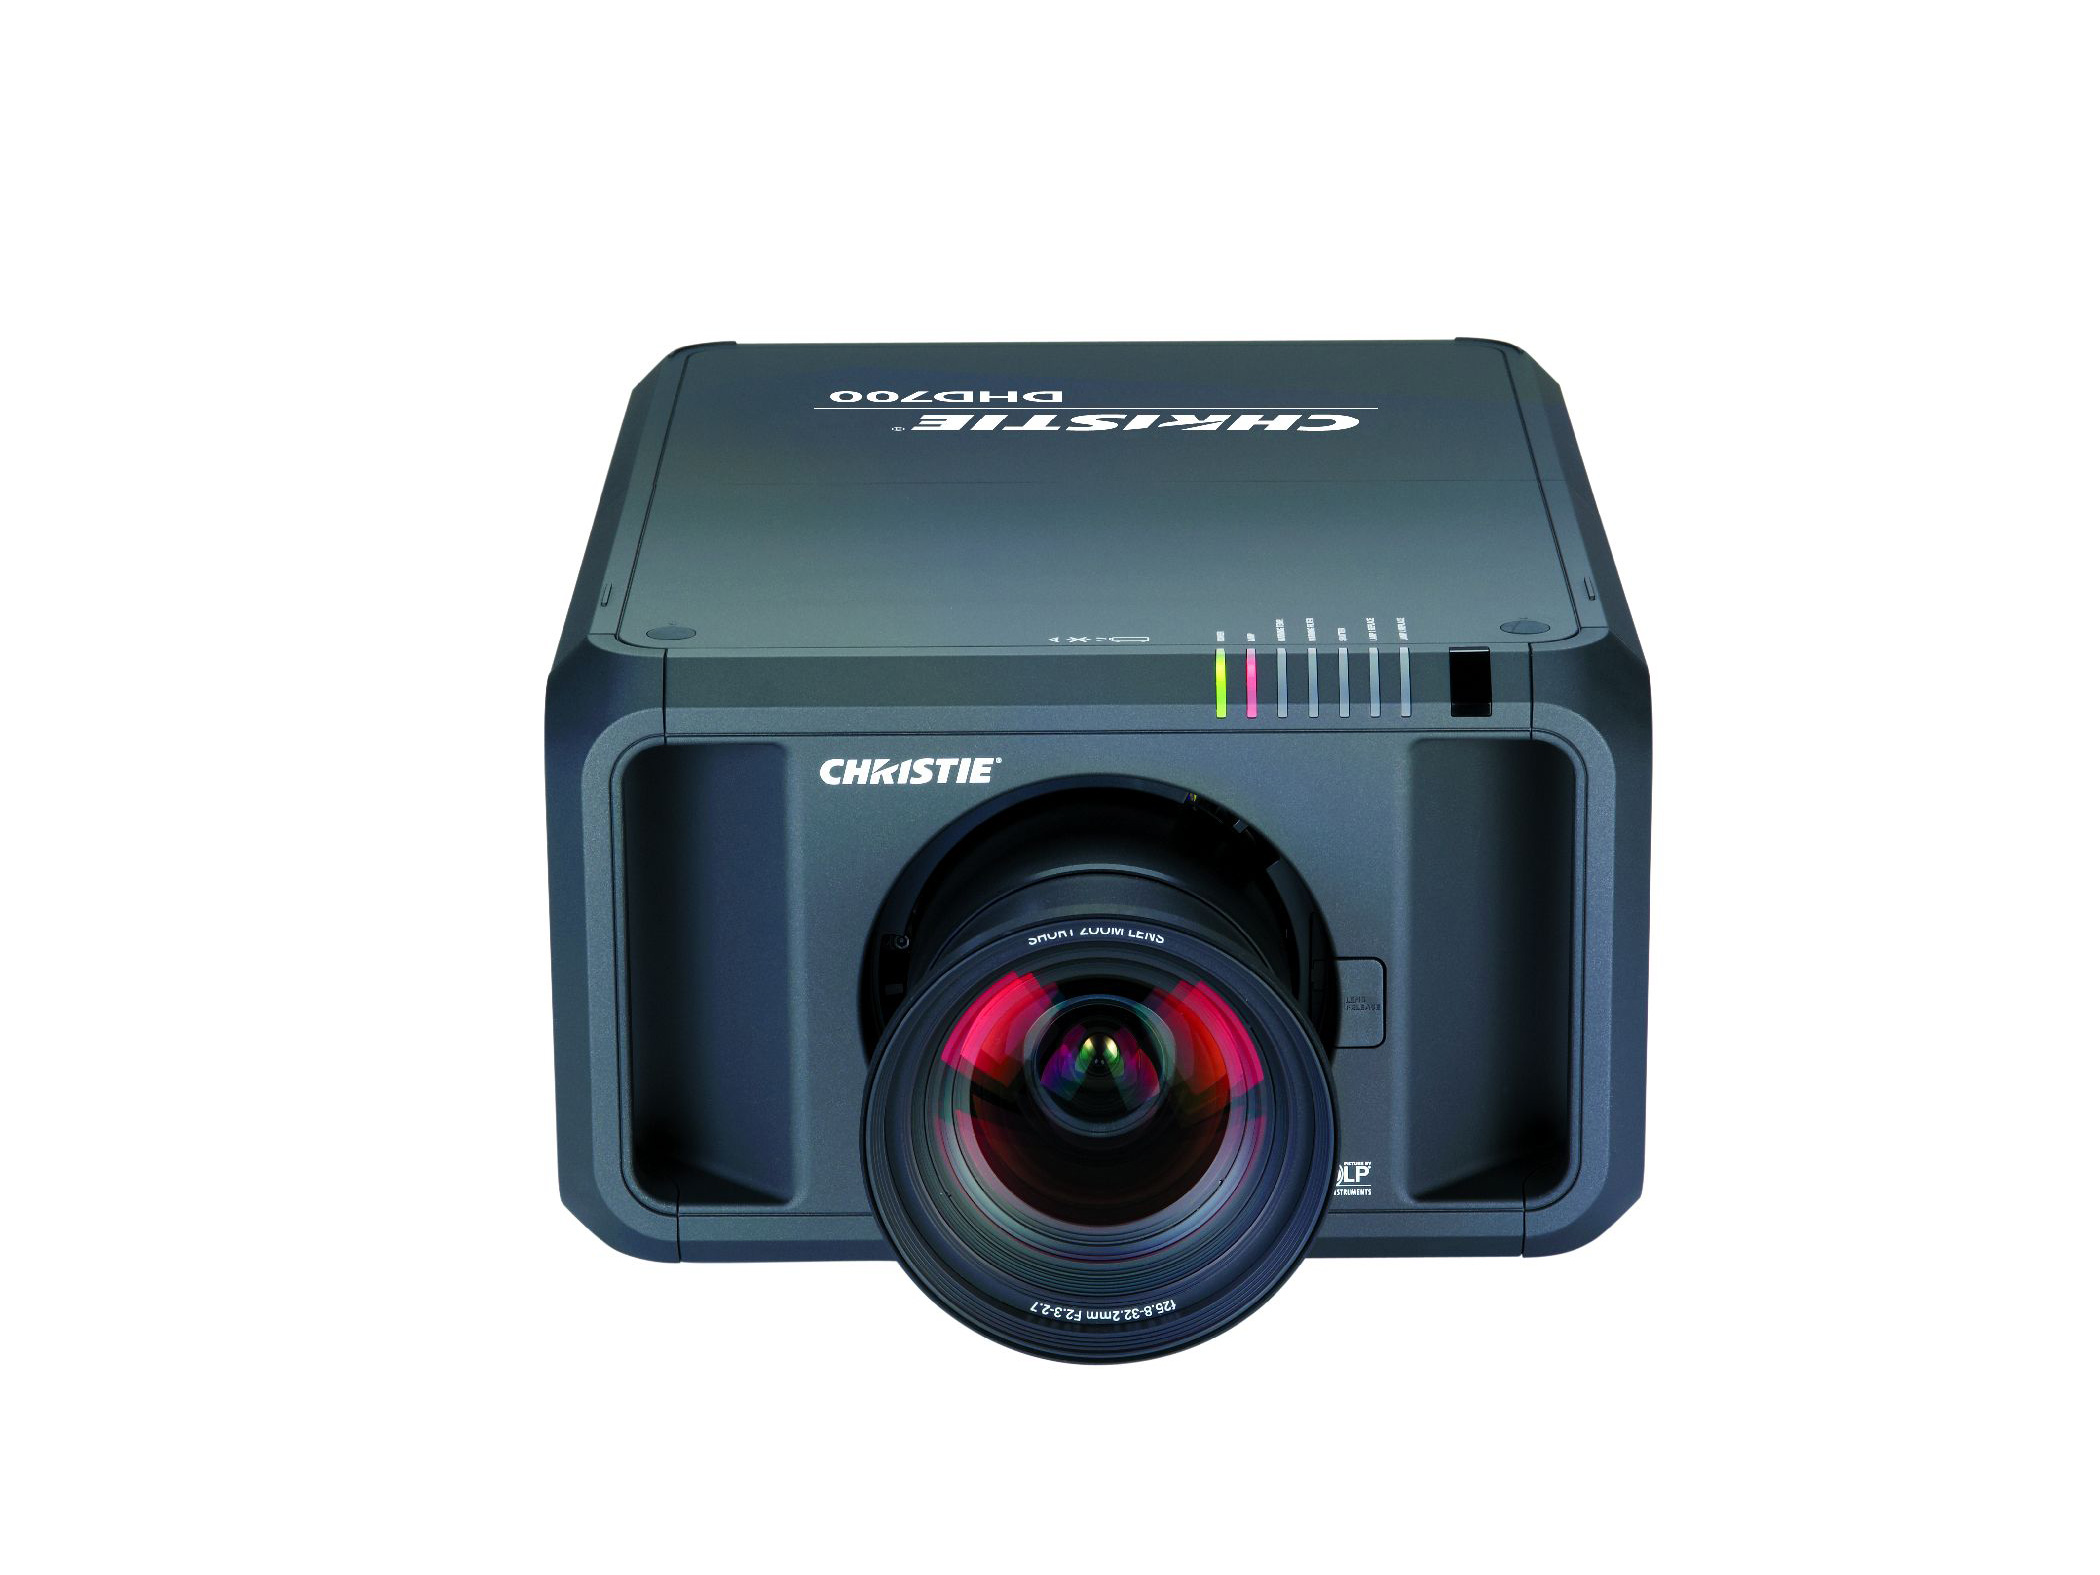 /globalassets/.catalog/products/images/christie-dhd700/gallery/christie-dhd700-1-chip-digital-projector-image9.jpg